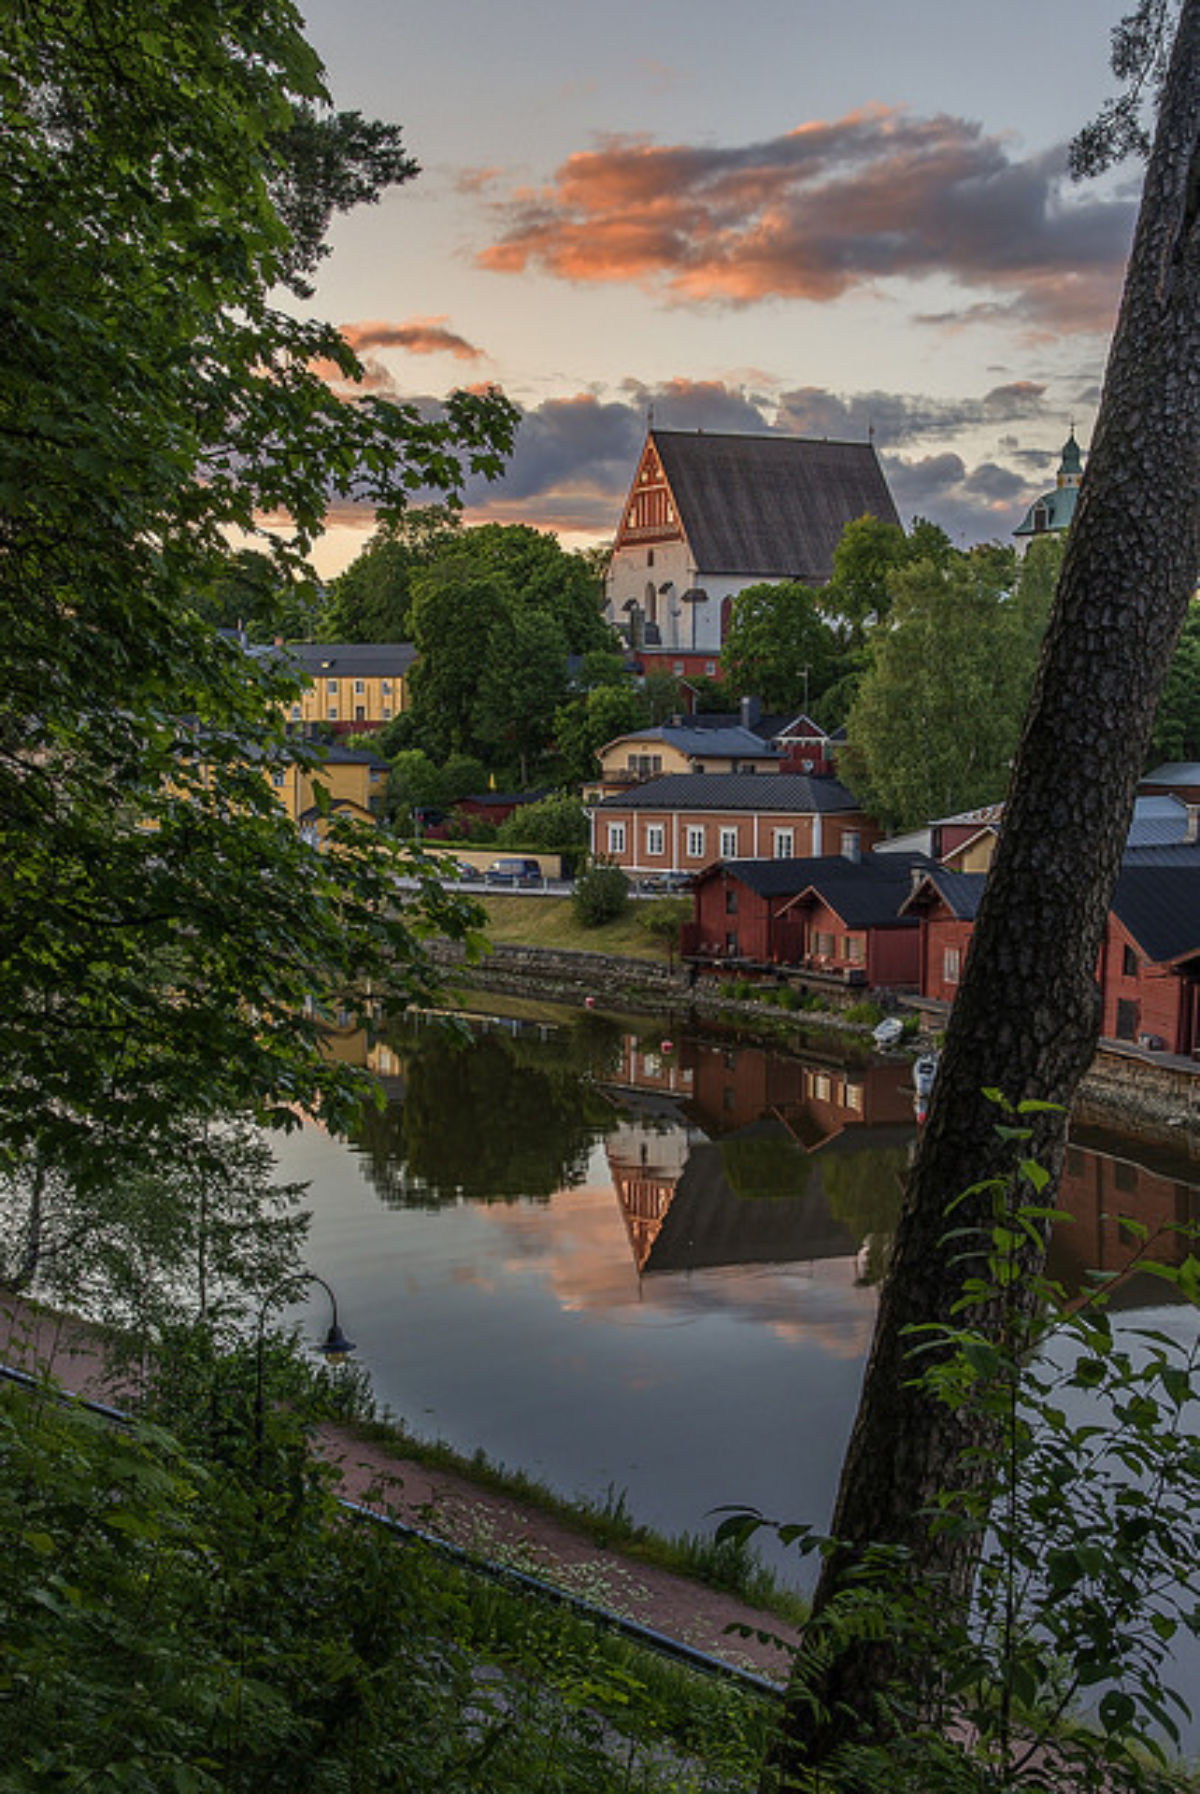 The red granaries by the river are one of the symbols of Porvoo. Some of them house cafés but most of them are still in private use.